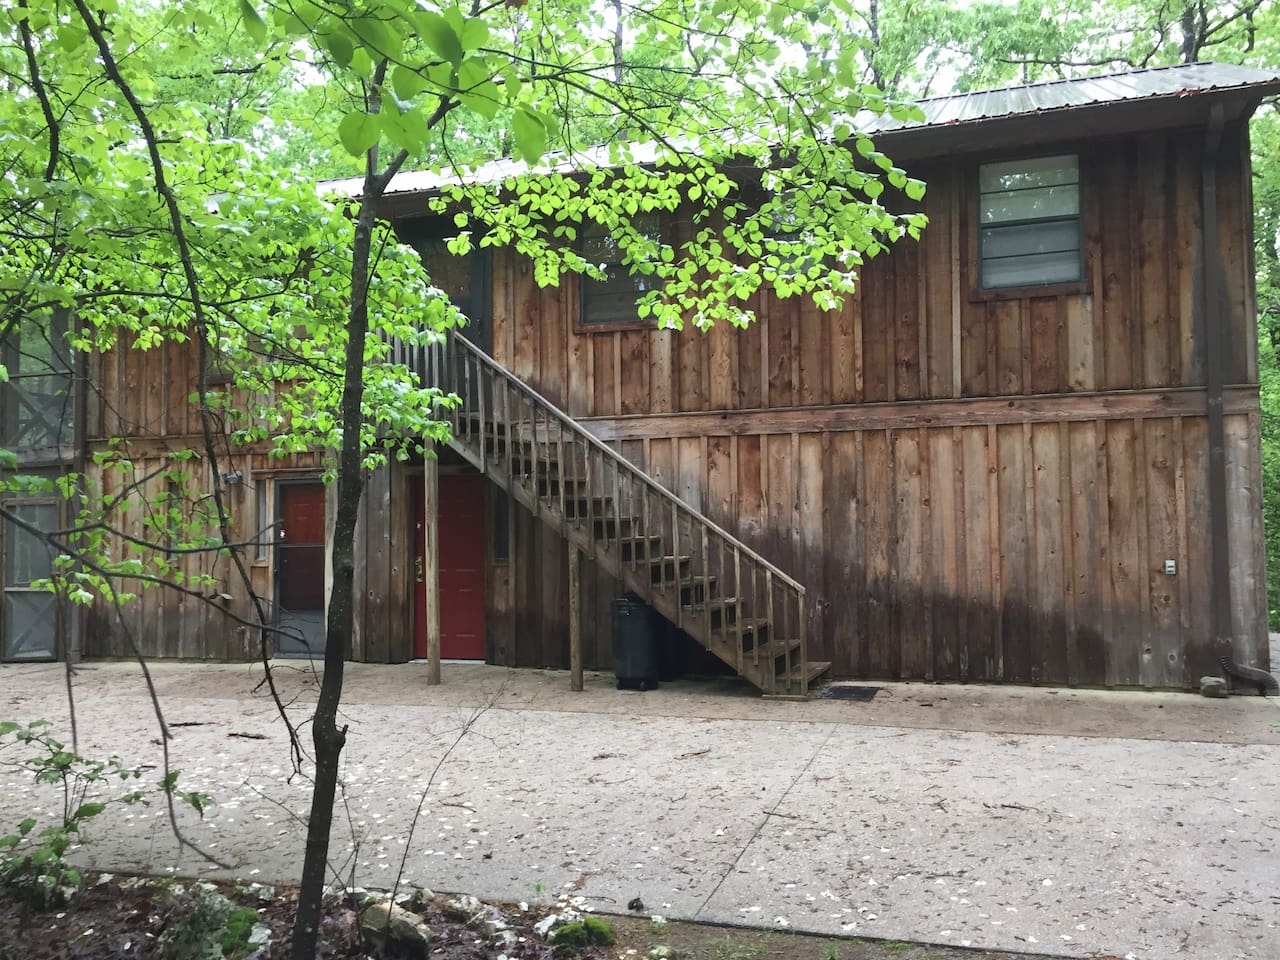 Outside of the cabin